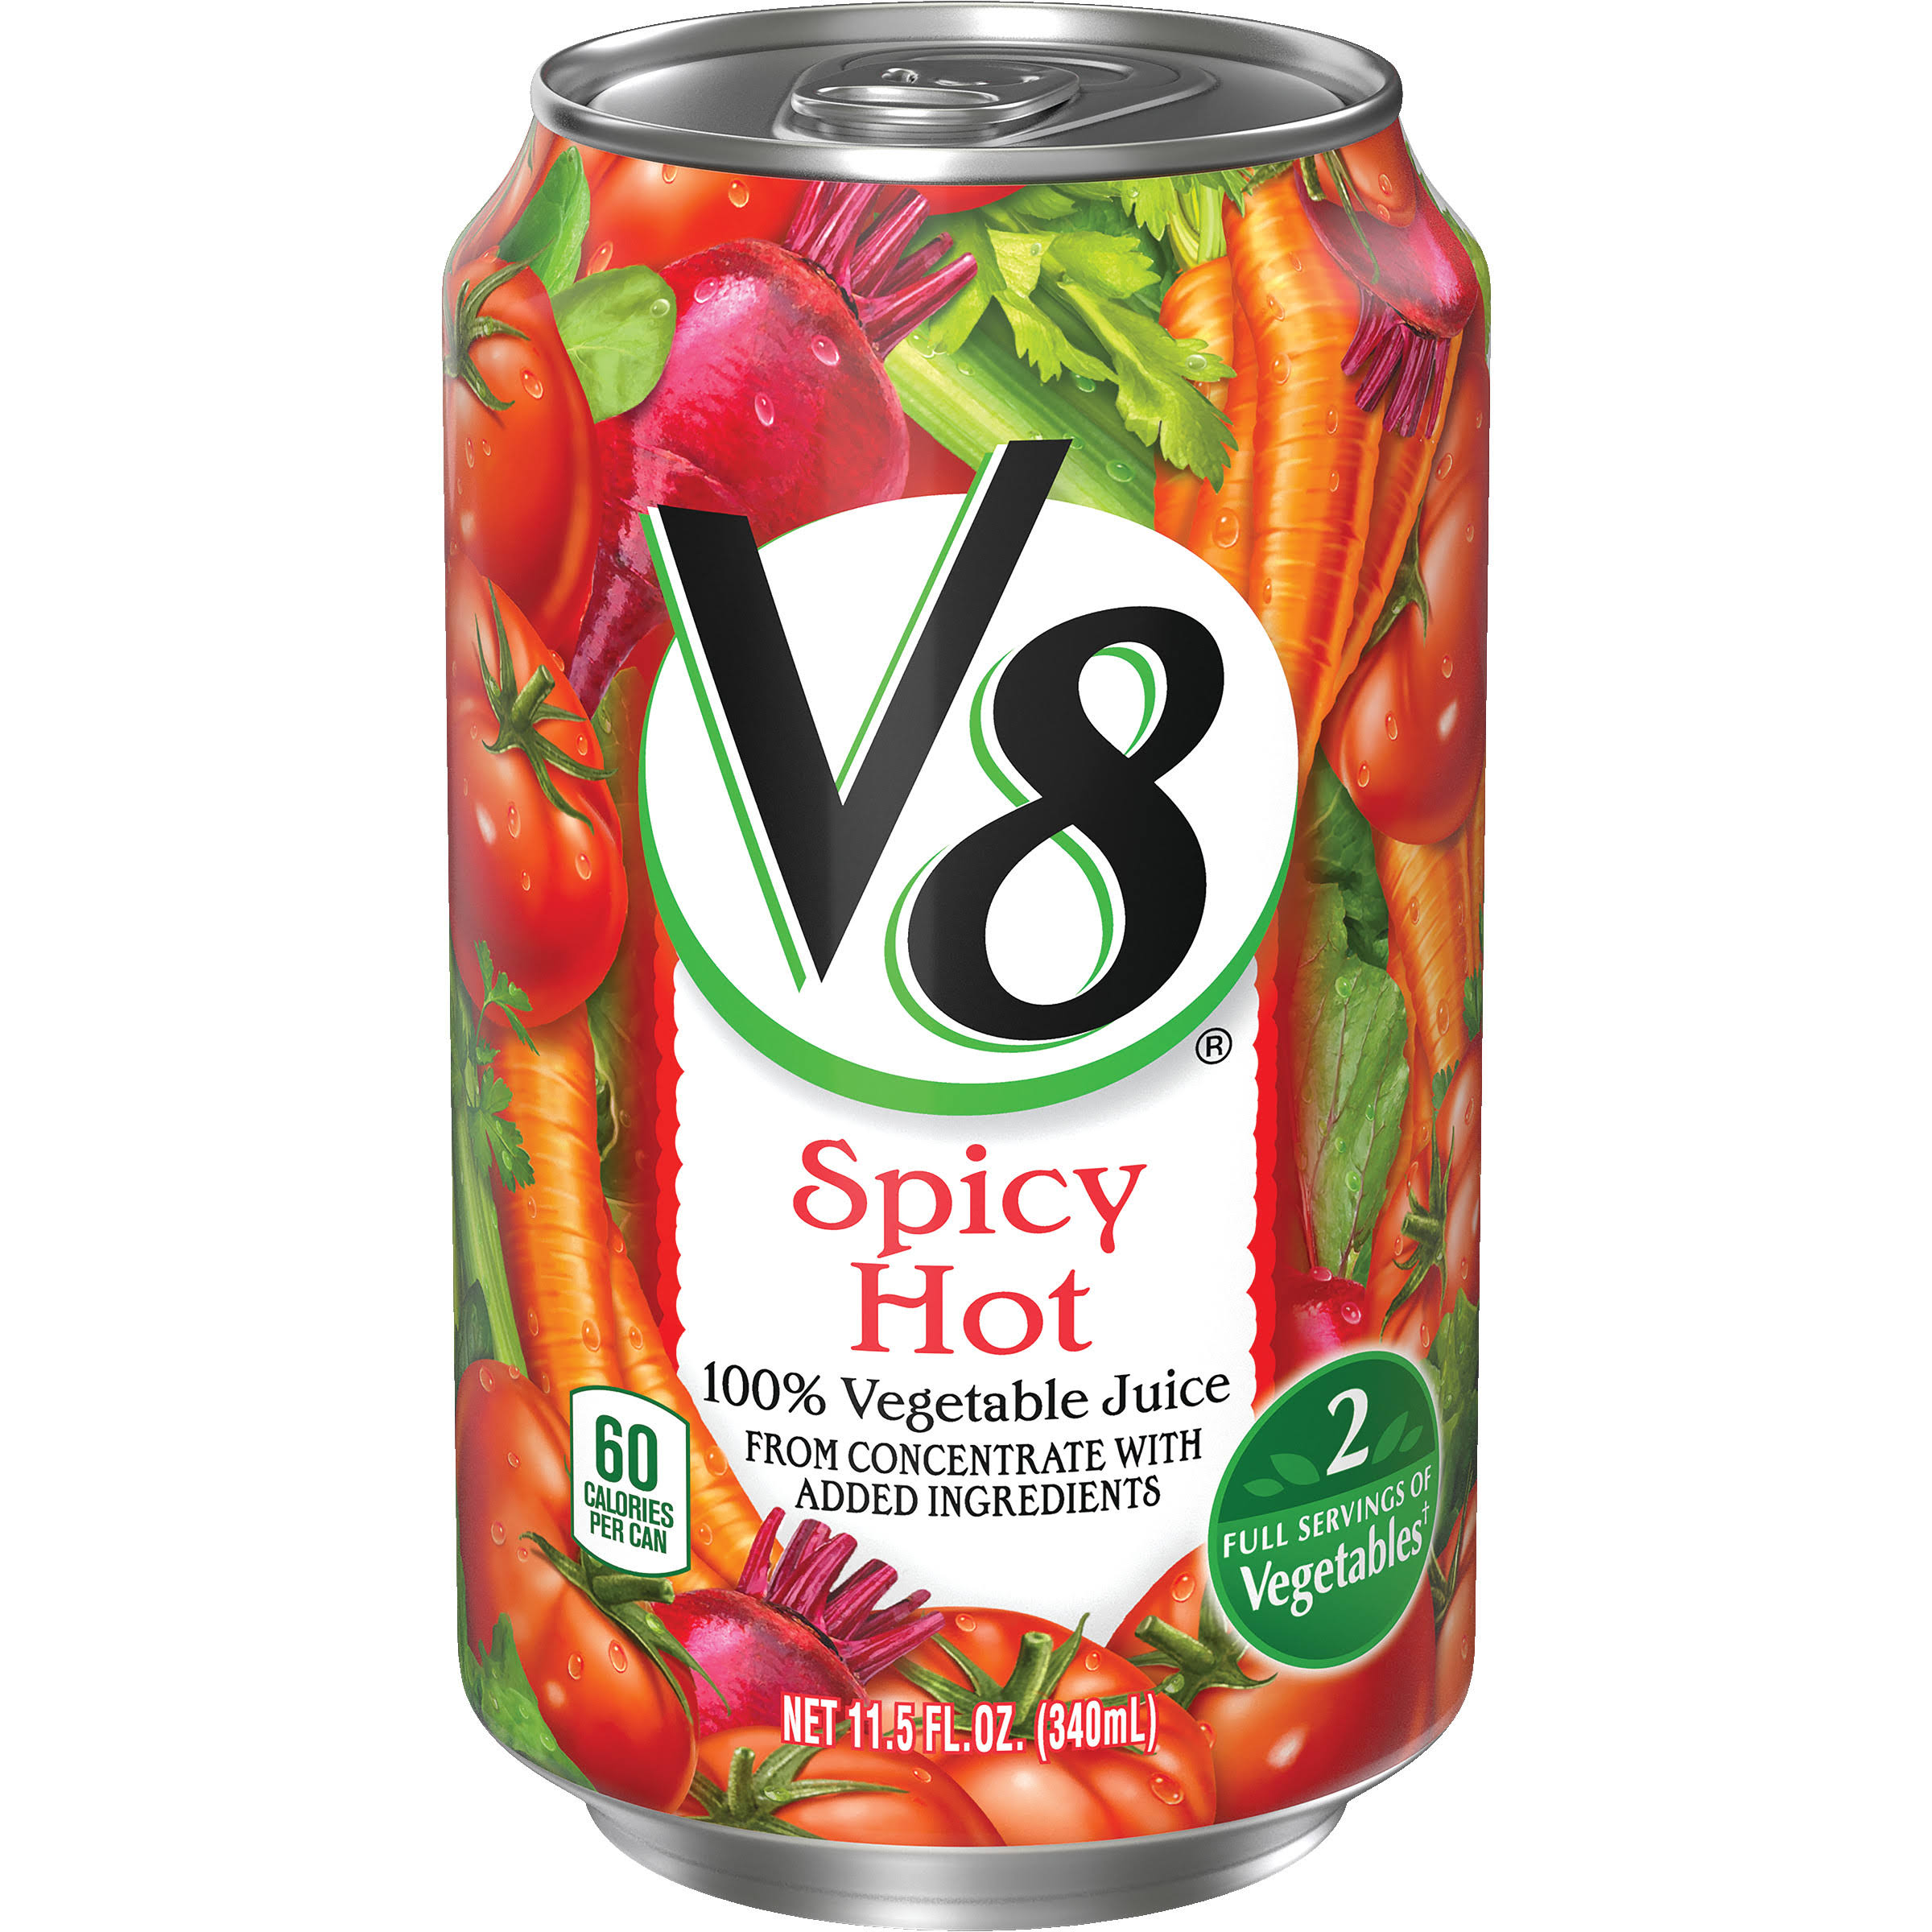 V8 Vegetable Juice - Spicy Hot, 340ml